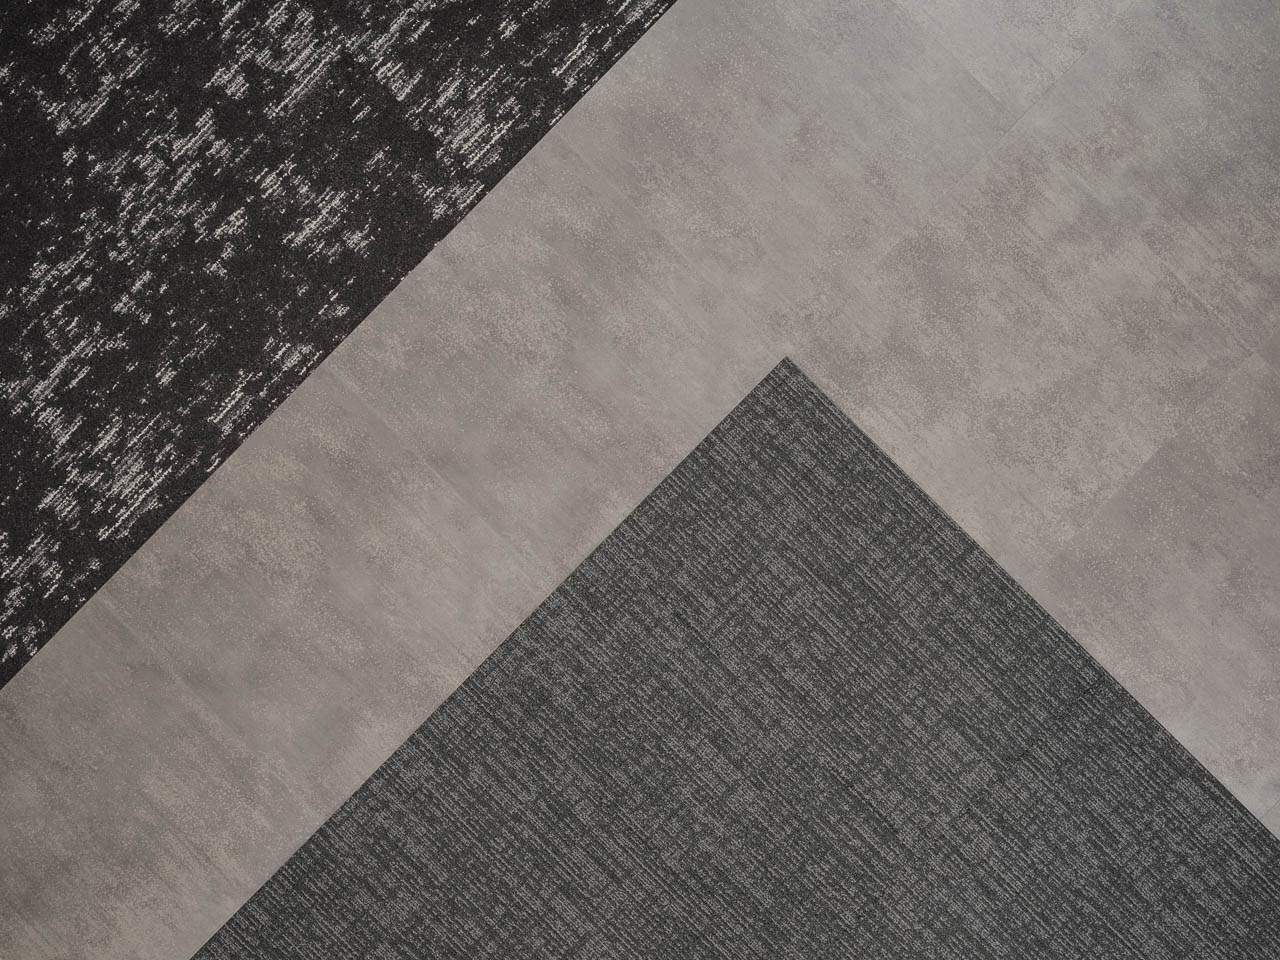 Colour Anchor Tinker and Altitude Sierra Storm carpet with Metropolis Grey from the Access Loose Lay LVT Collection